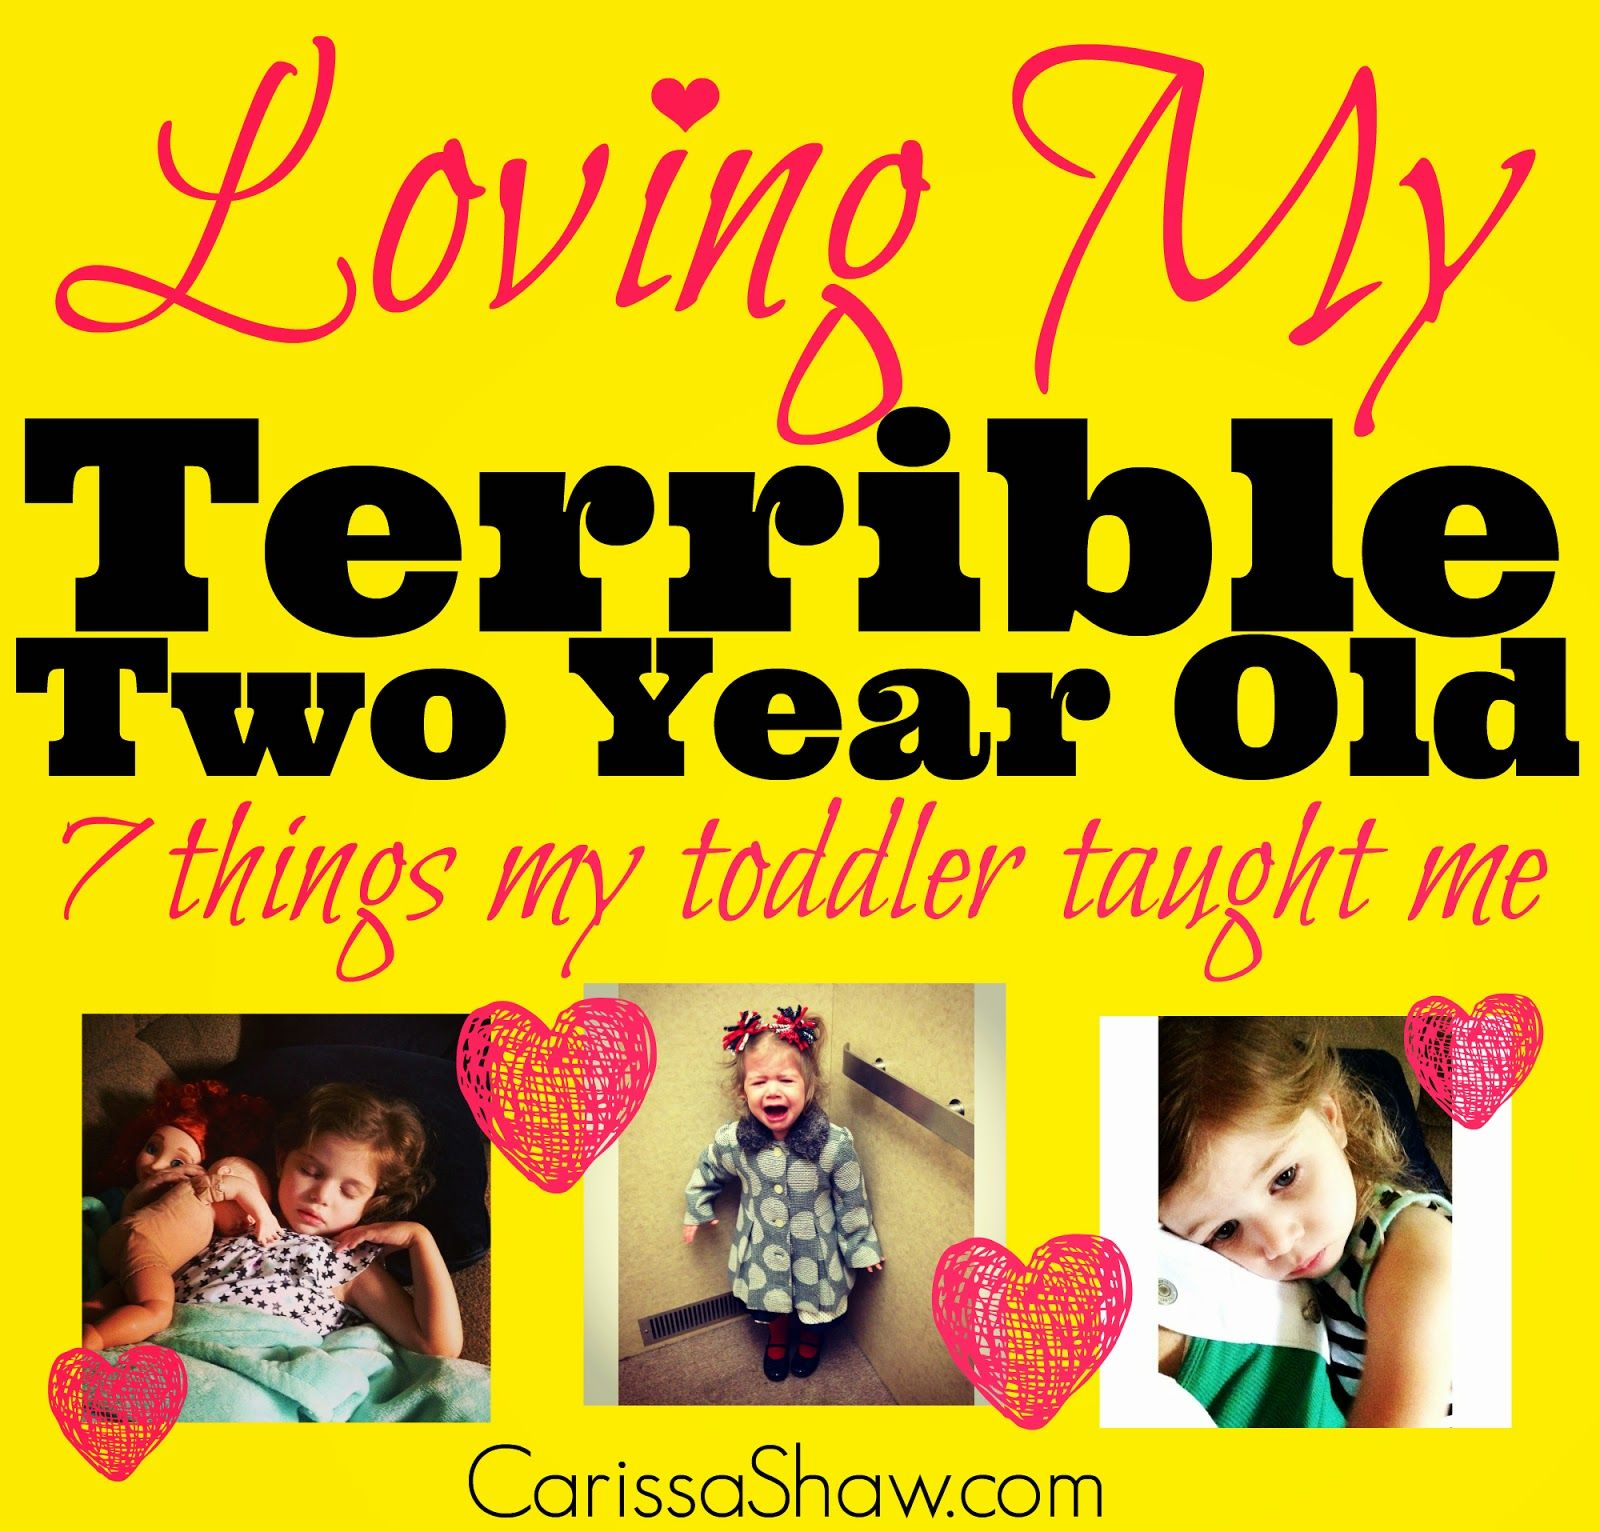 Loving My Terrible Two Year Old